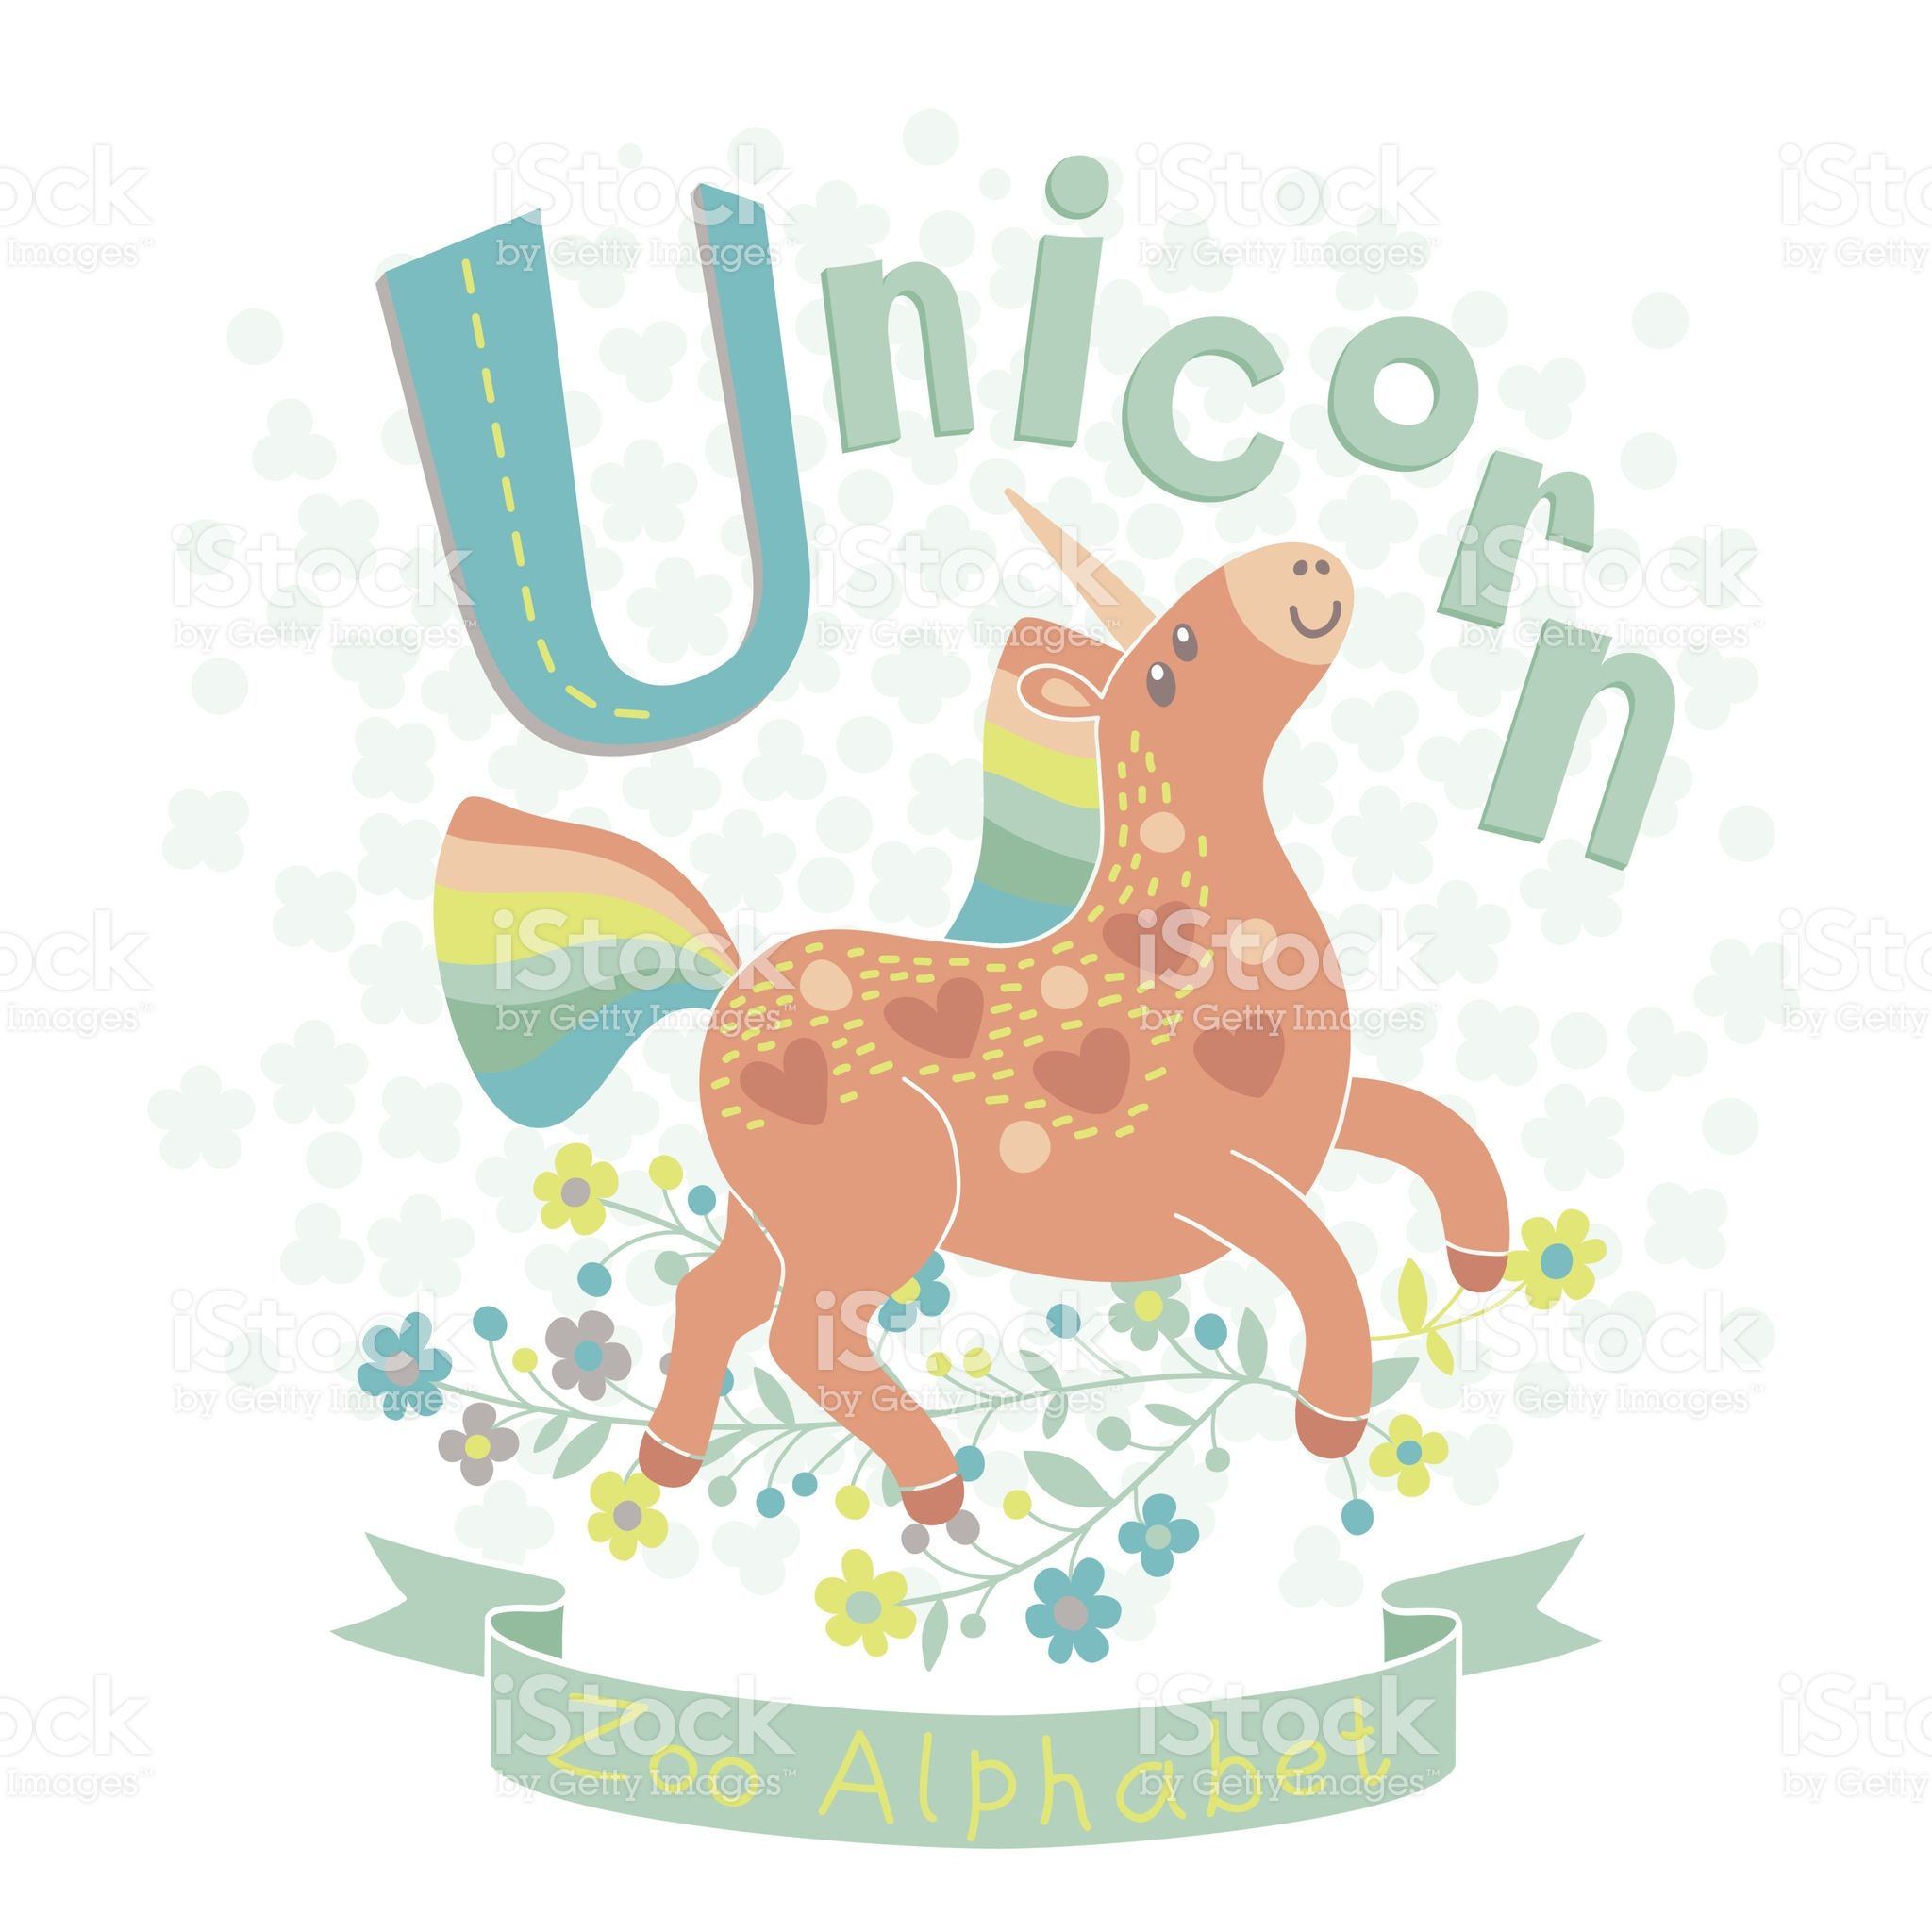 Letter U Unicorn Alphabet With Cute Animals Vector Illustration Alfabeto Pintar Colores